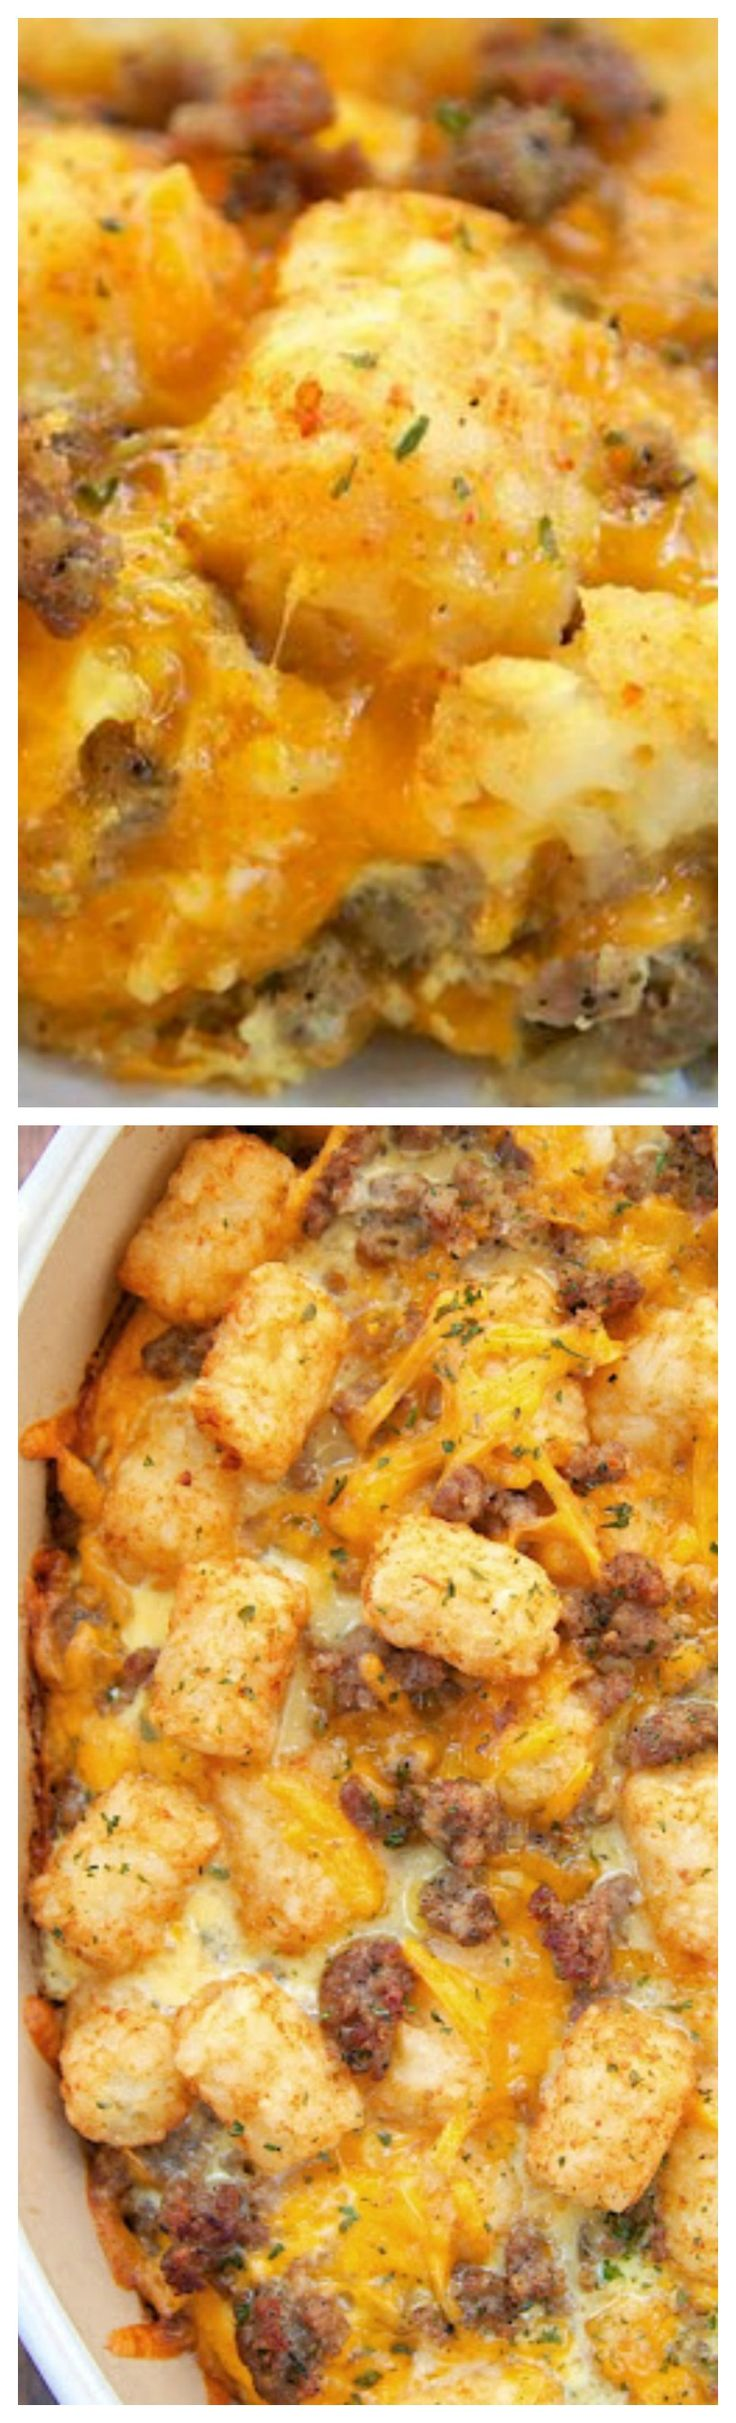 Tater Tot Sausage Breakfast Casserole ~ Great make ahead recipe... Sausage, cheddar cheese, tater tots, eggs, milk, garlic, onion and black pepper - Great for breakfast. lunch or dinner. Everyone loves this easy breakfast casserole!!